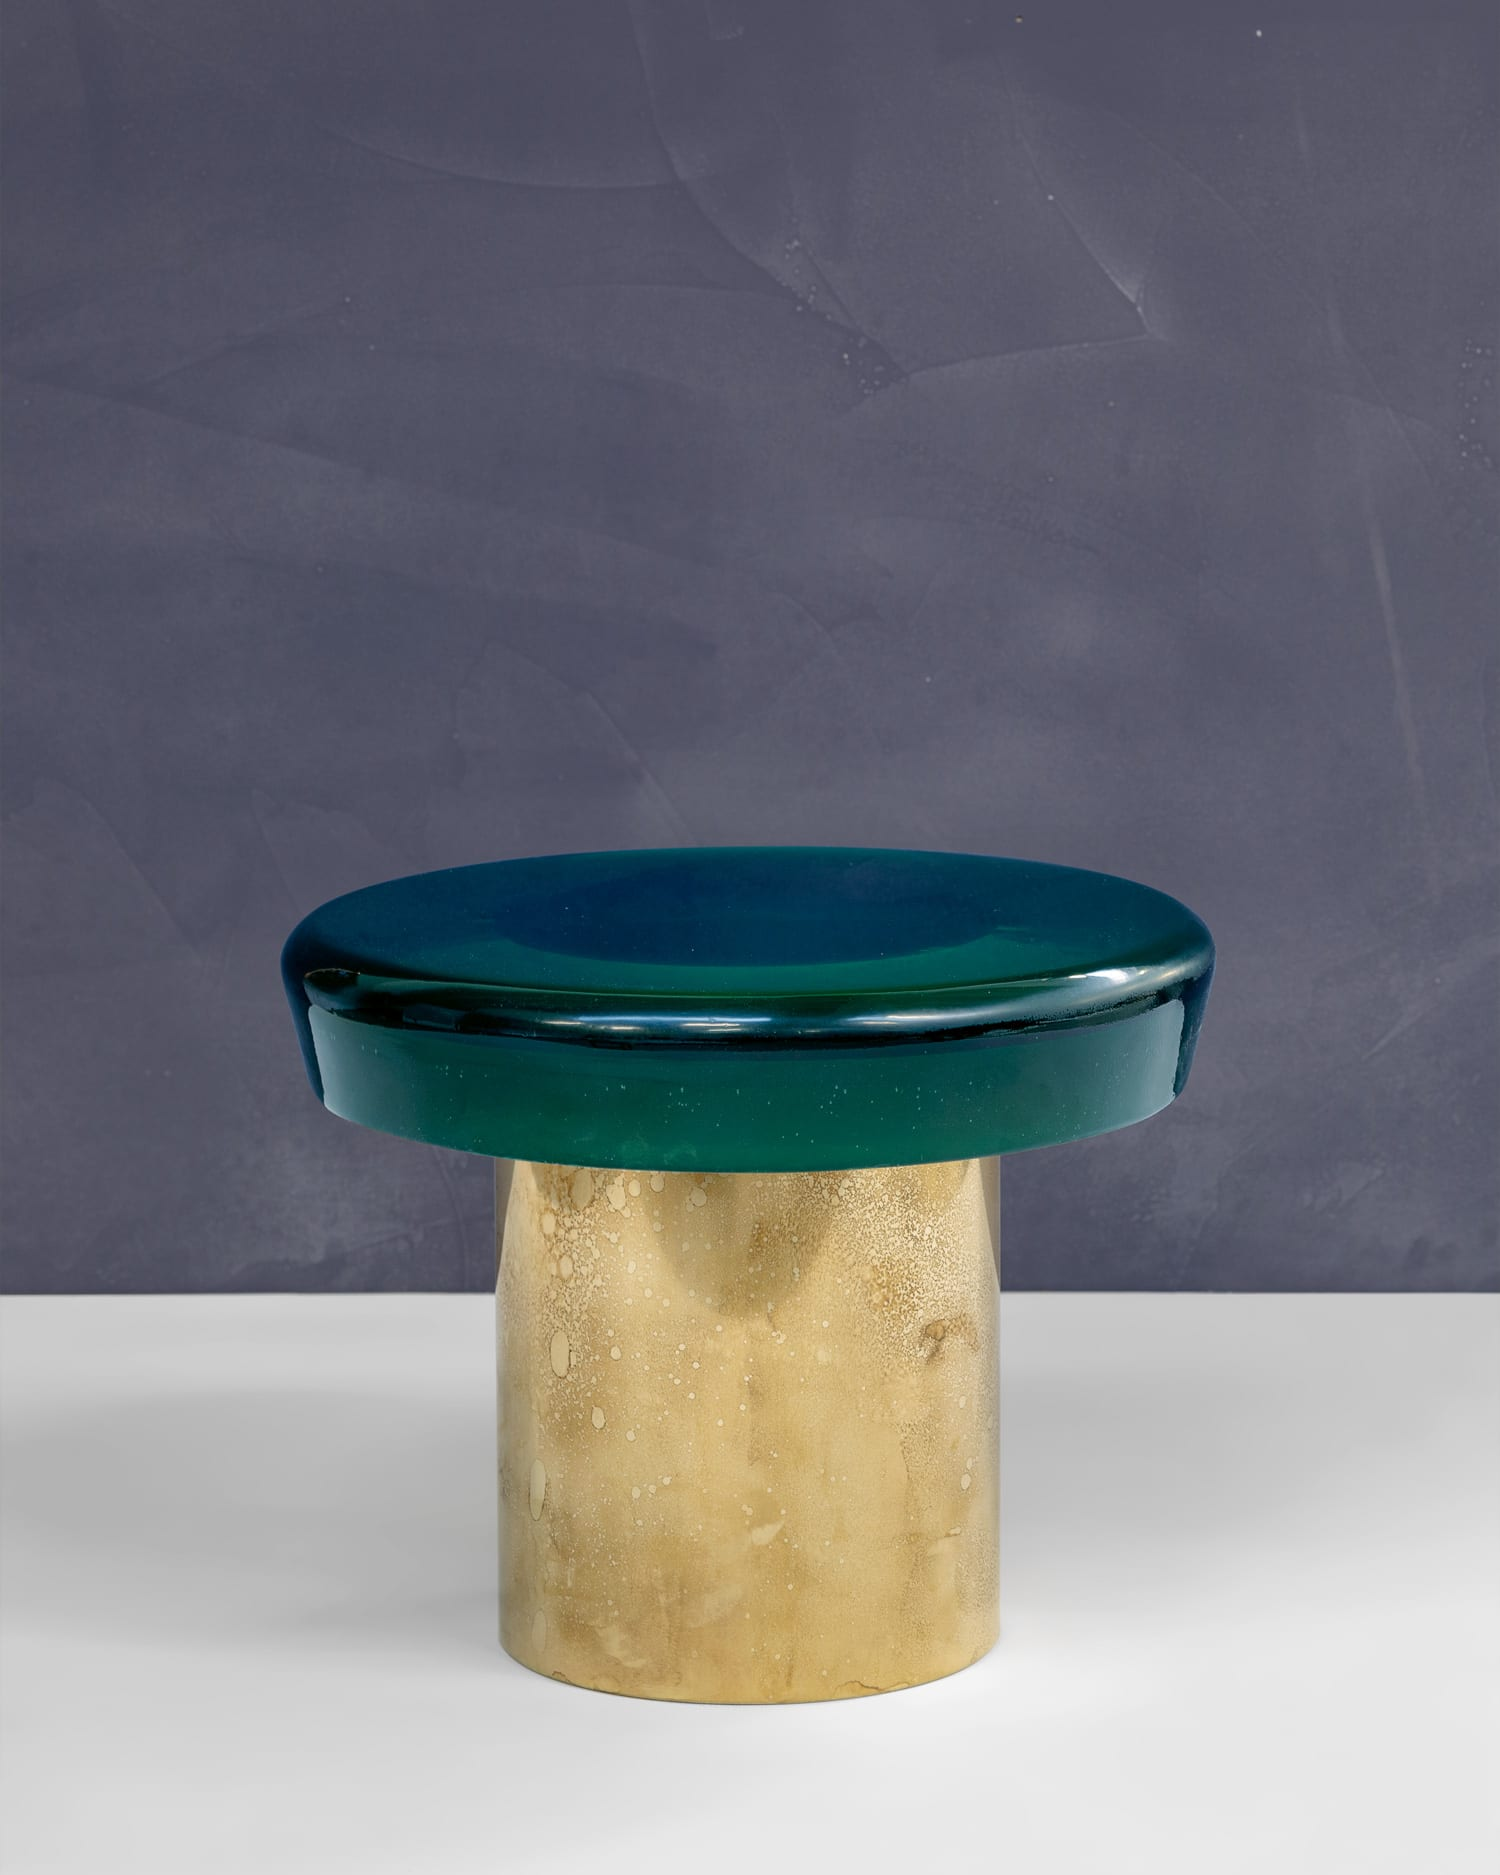 Transparency Matters Furniture Lighting And Art Collection By Draga And Aurel Yellowtrace 02